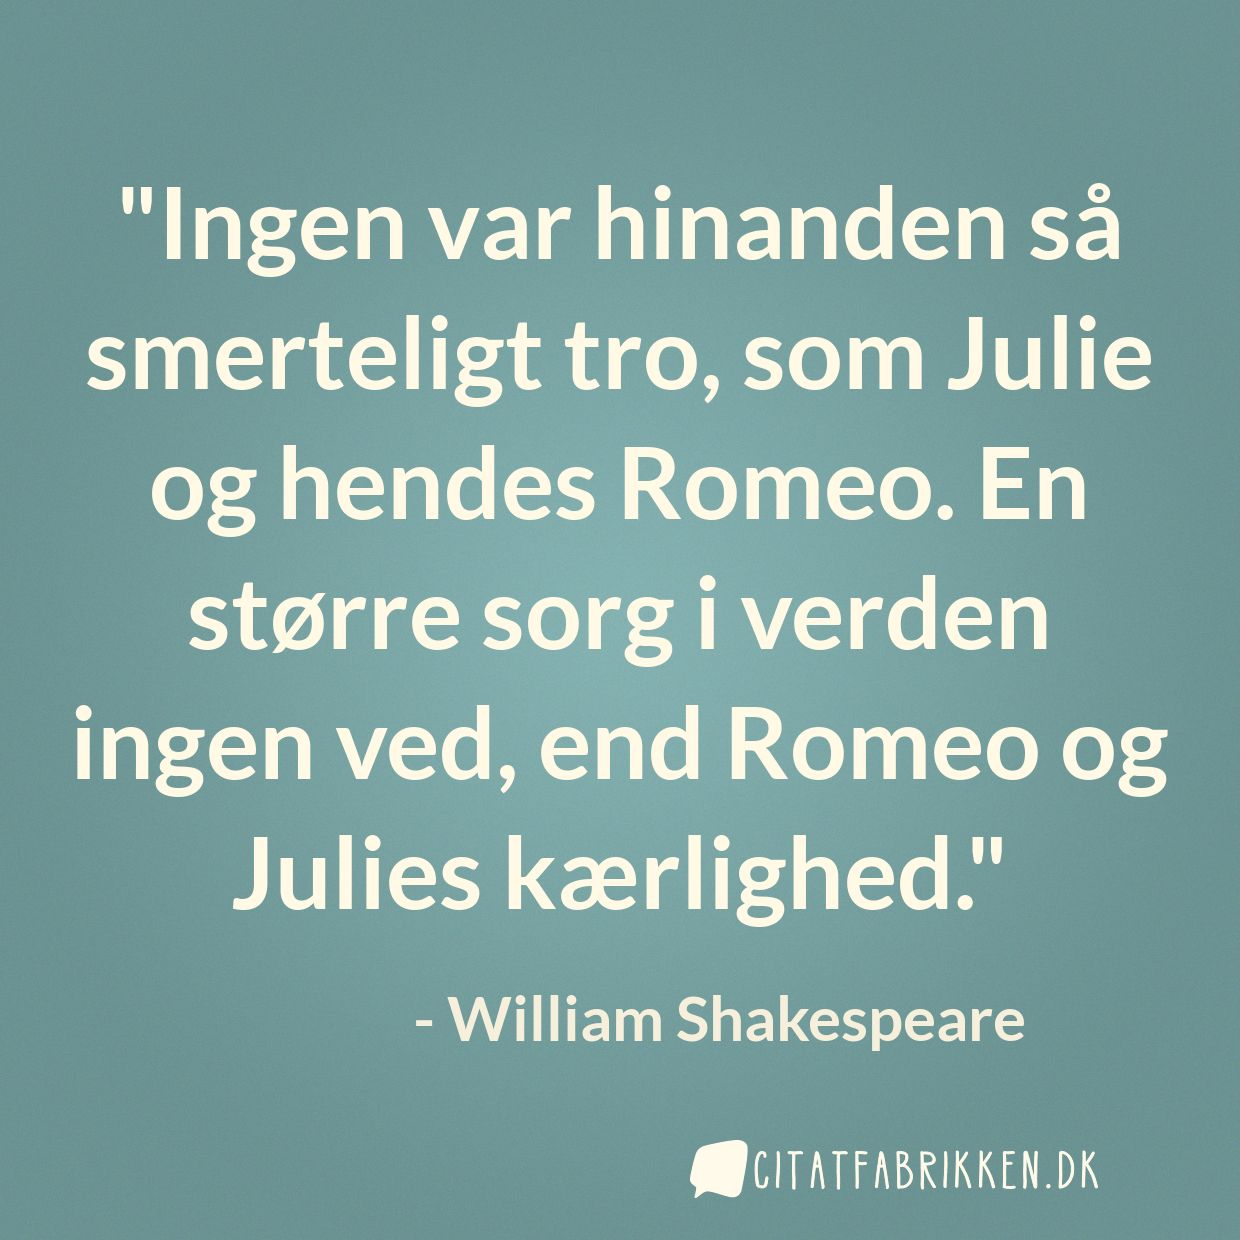 shakespeare citater Citat | William Shakespeare shakespeare citater